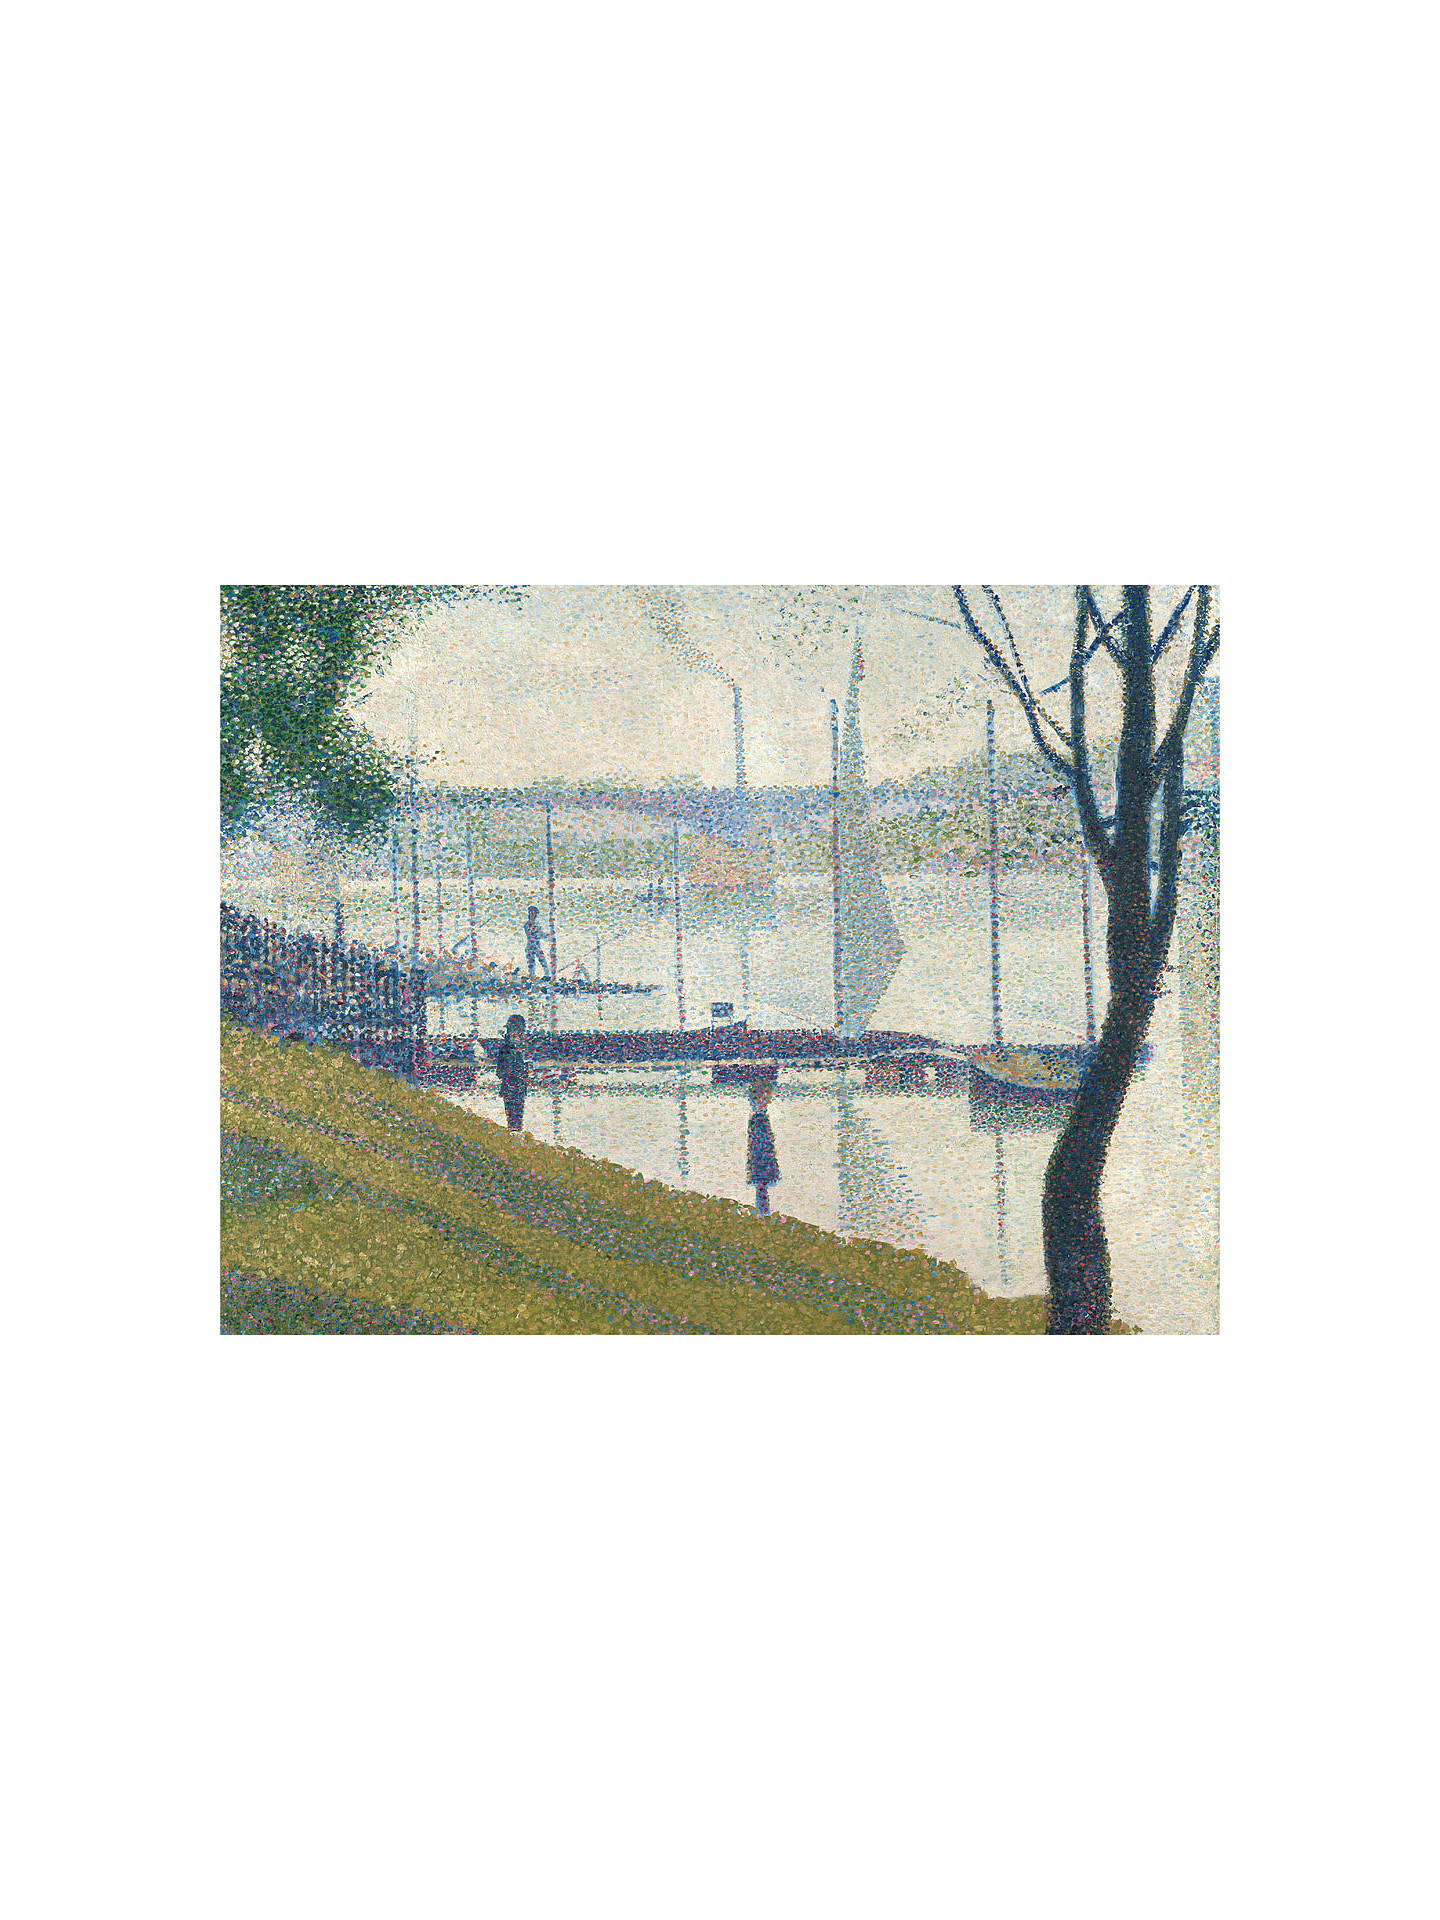 Buy The Courtauld Gallery, Georges Seurat - Bridge at Courbevoie 1886-1887 Print, Stretched Canvas, 40 x 50cm Online at johnlewis.com